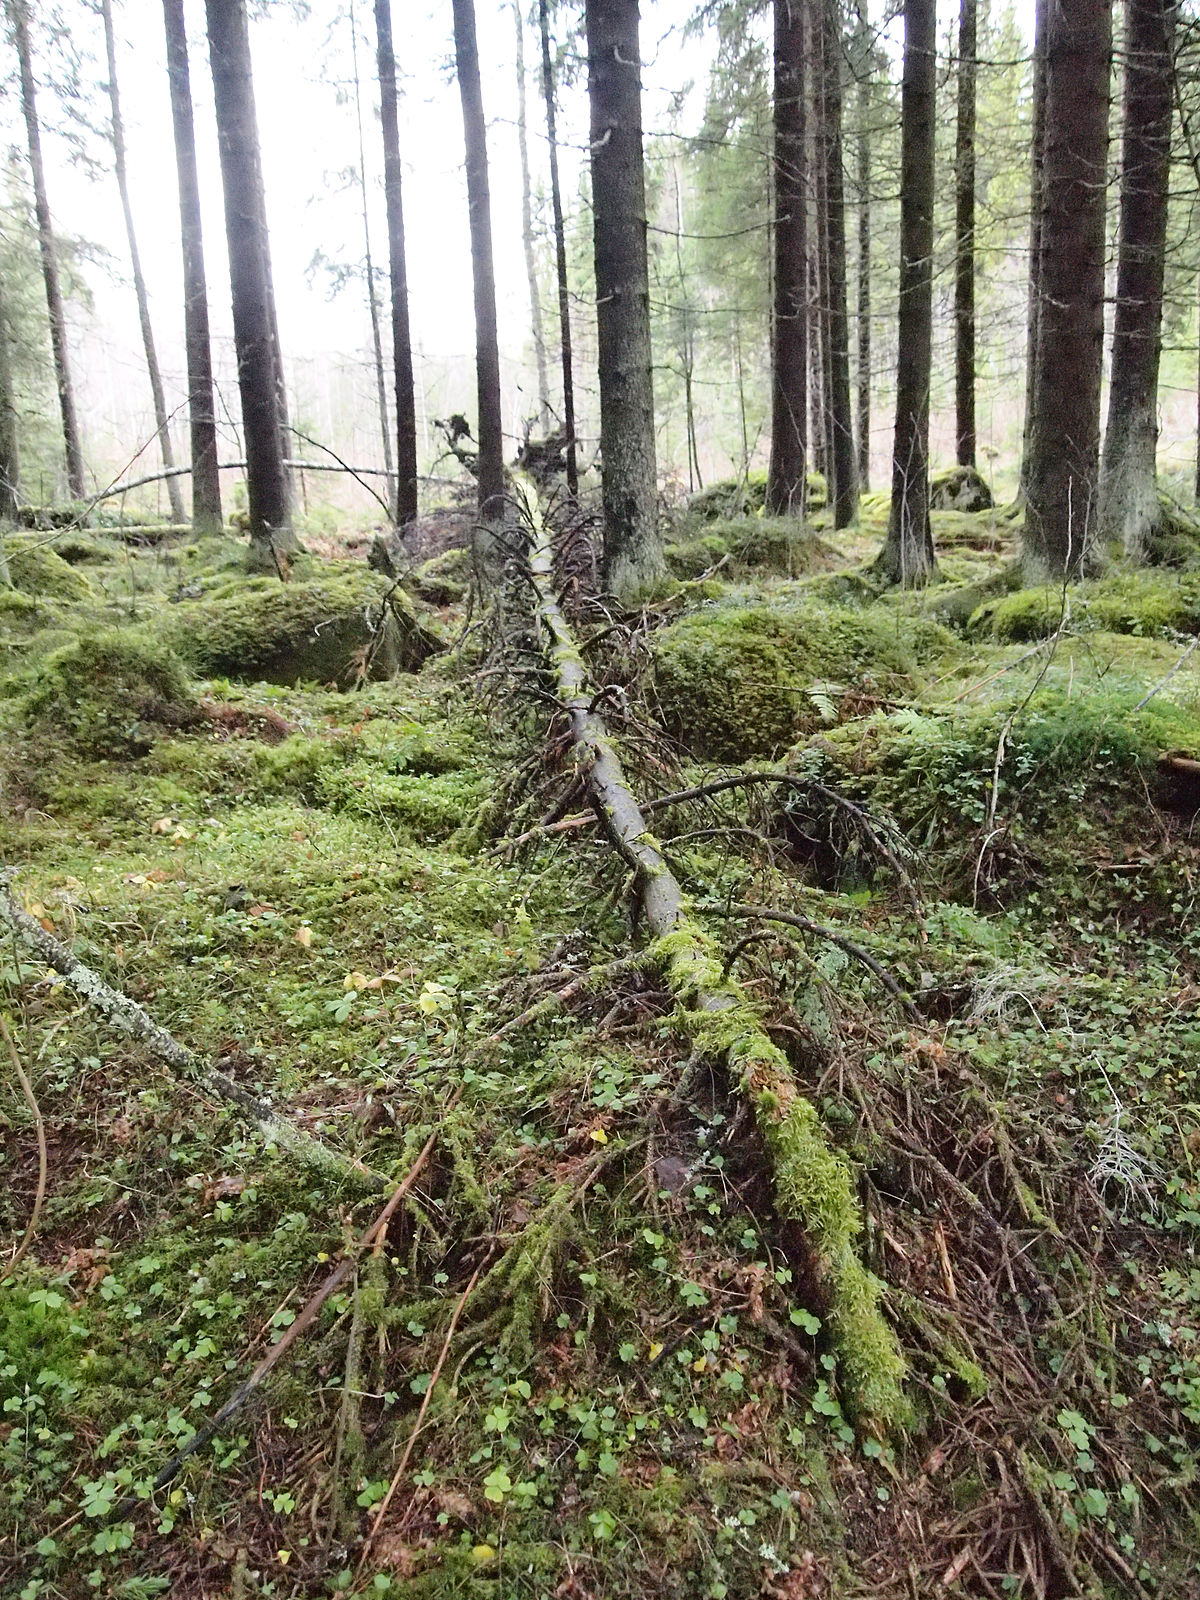 If a tree falls in a forest - Wikipedia